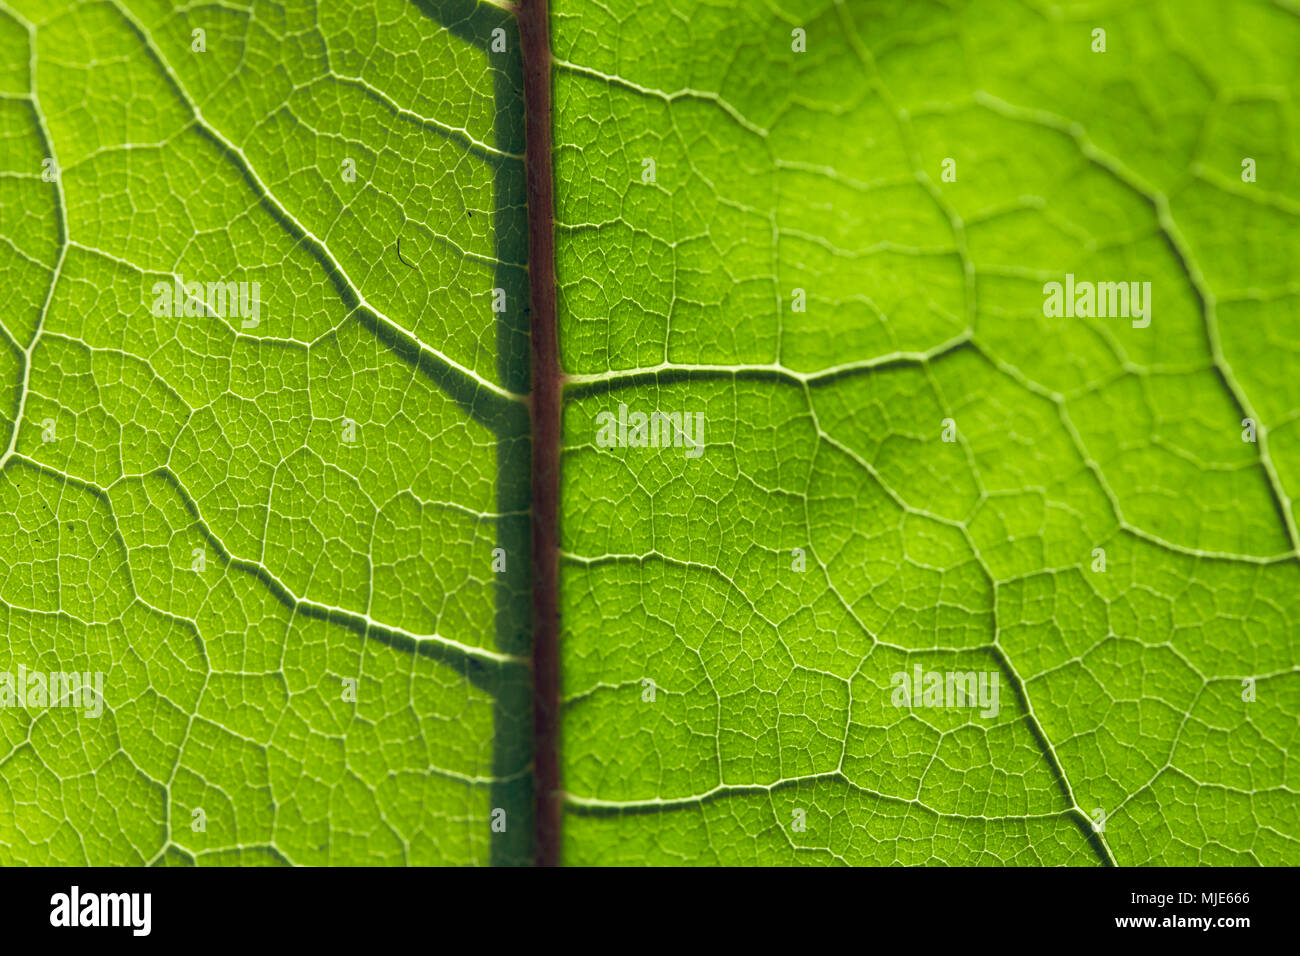 Branching veins of a green leaf, detail, close up - Stock Image